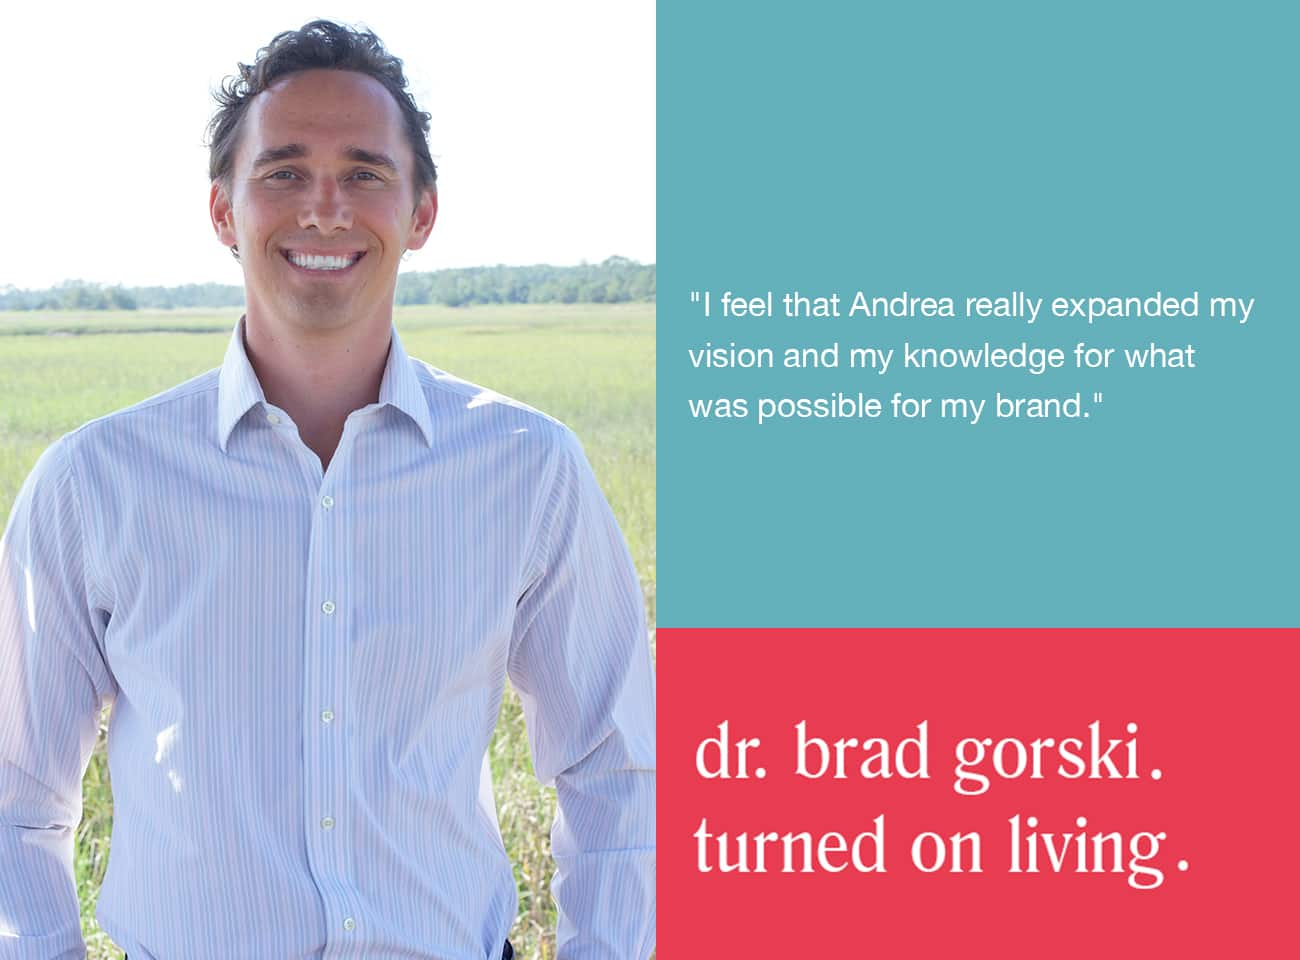 dr brad gorski turned on living